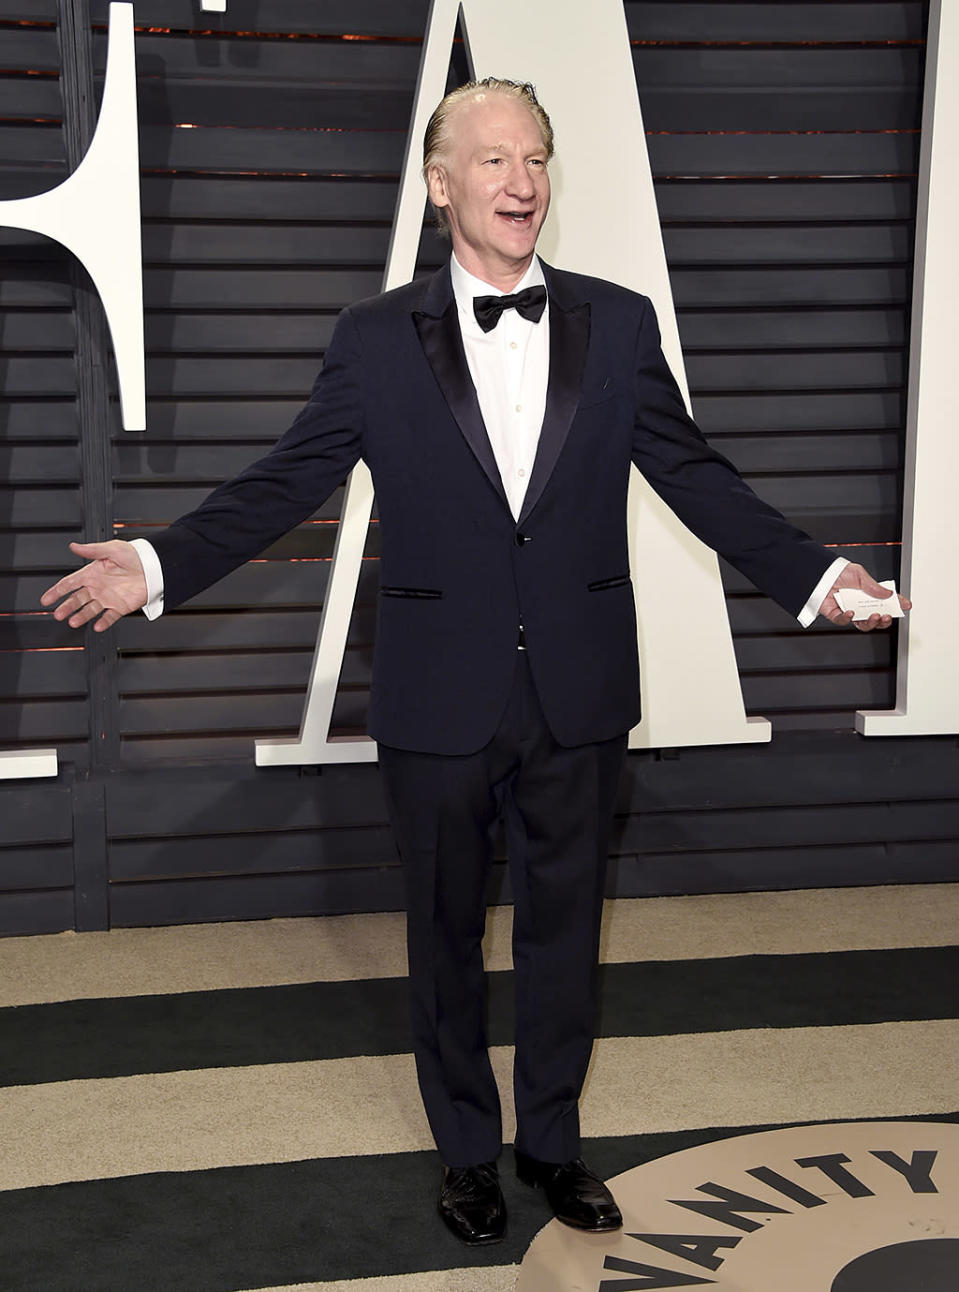 <p>Bill Maher arrives at the Vanity Fair Oscar Party on Sunday, Feb. 26, 2017, in Beverly Hills, Calif. (Photo by Evan Agostini/Invision/AP) </p>